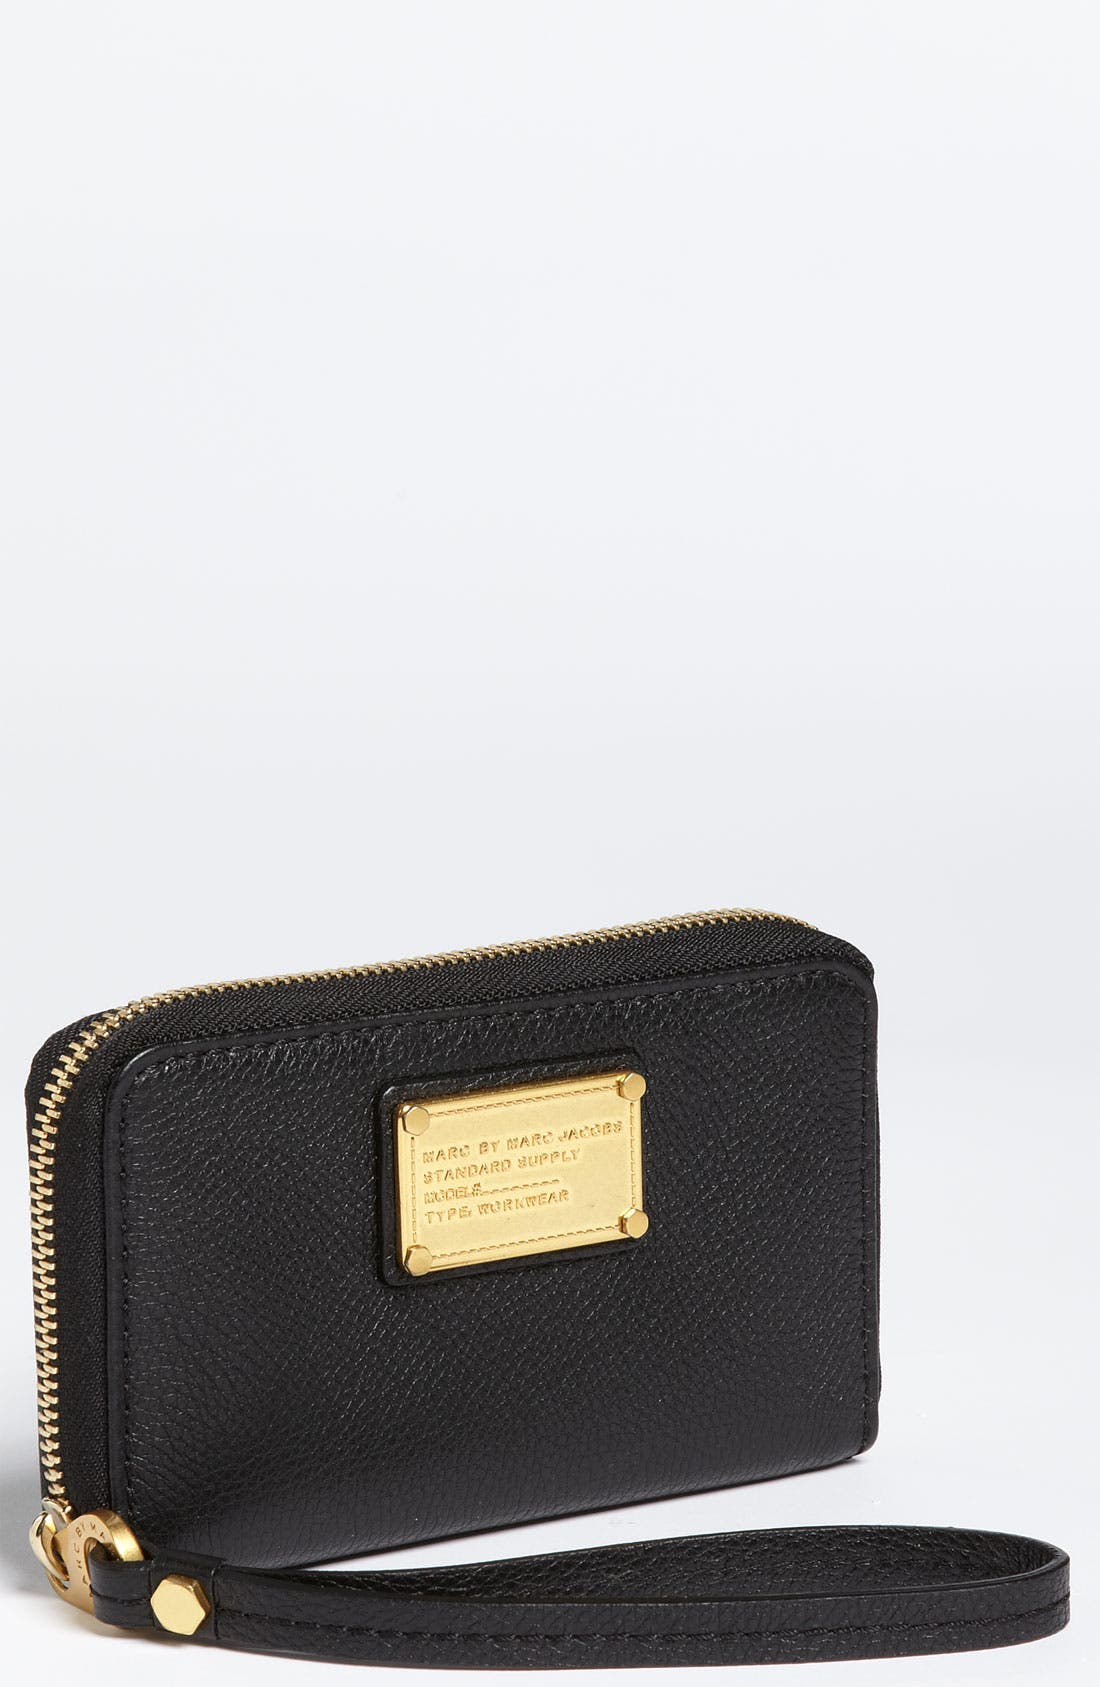 MARC JACOBS,                             MARC BY MARC JACOBS 'Classic Q - Wingman' Phone Wallet,                             Main thumbnail 1, color,                             001